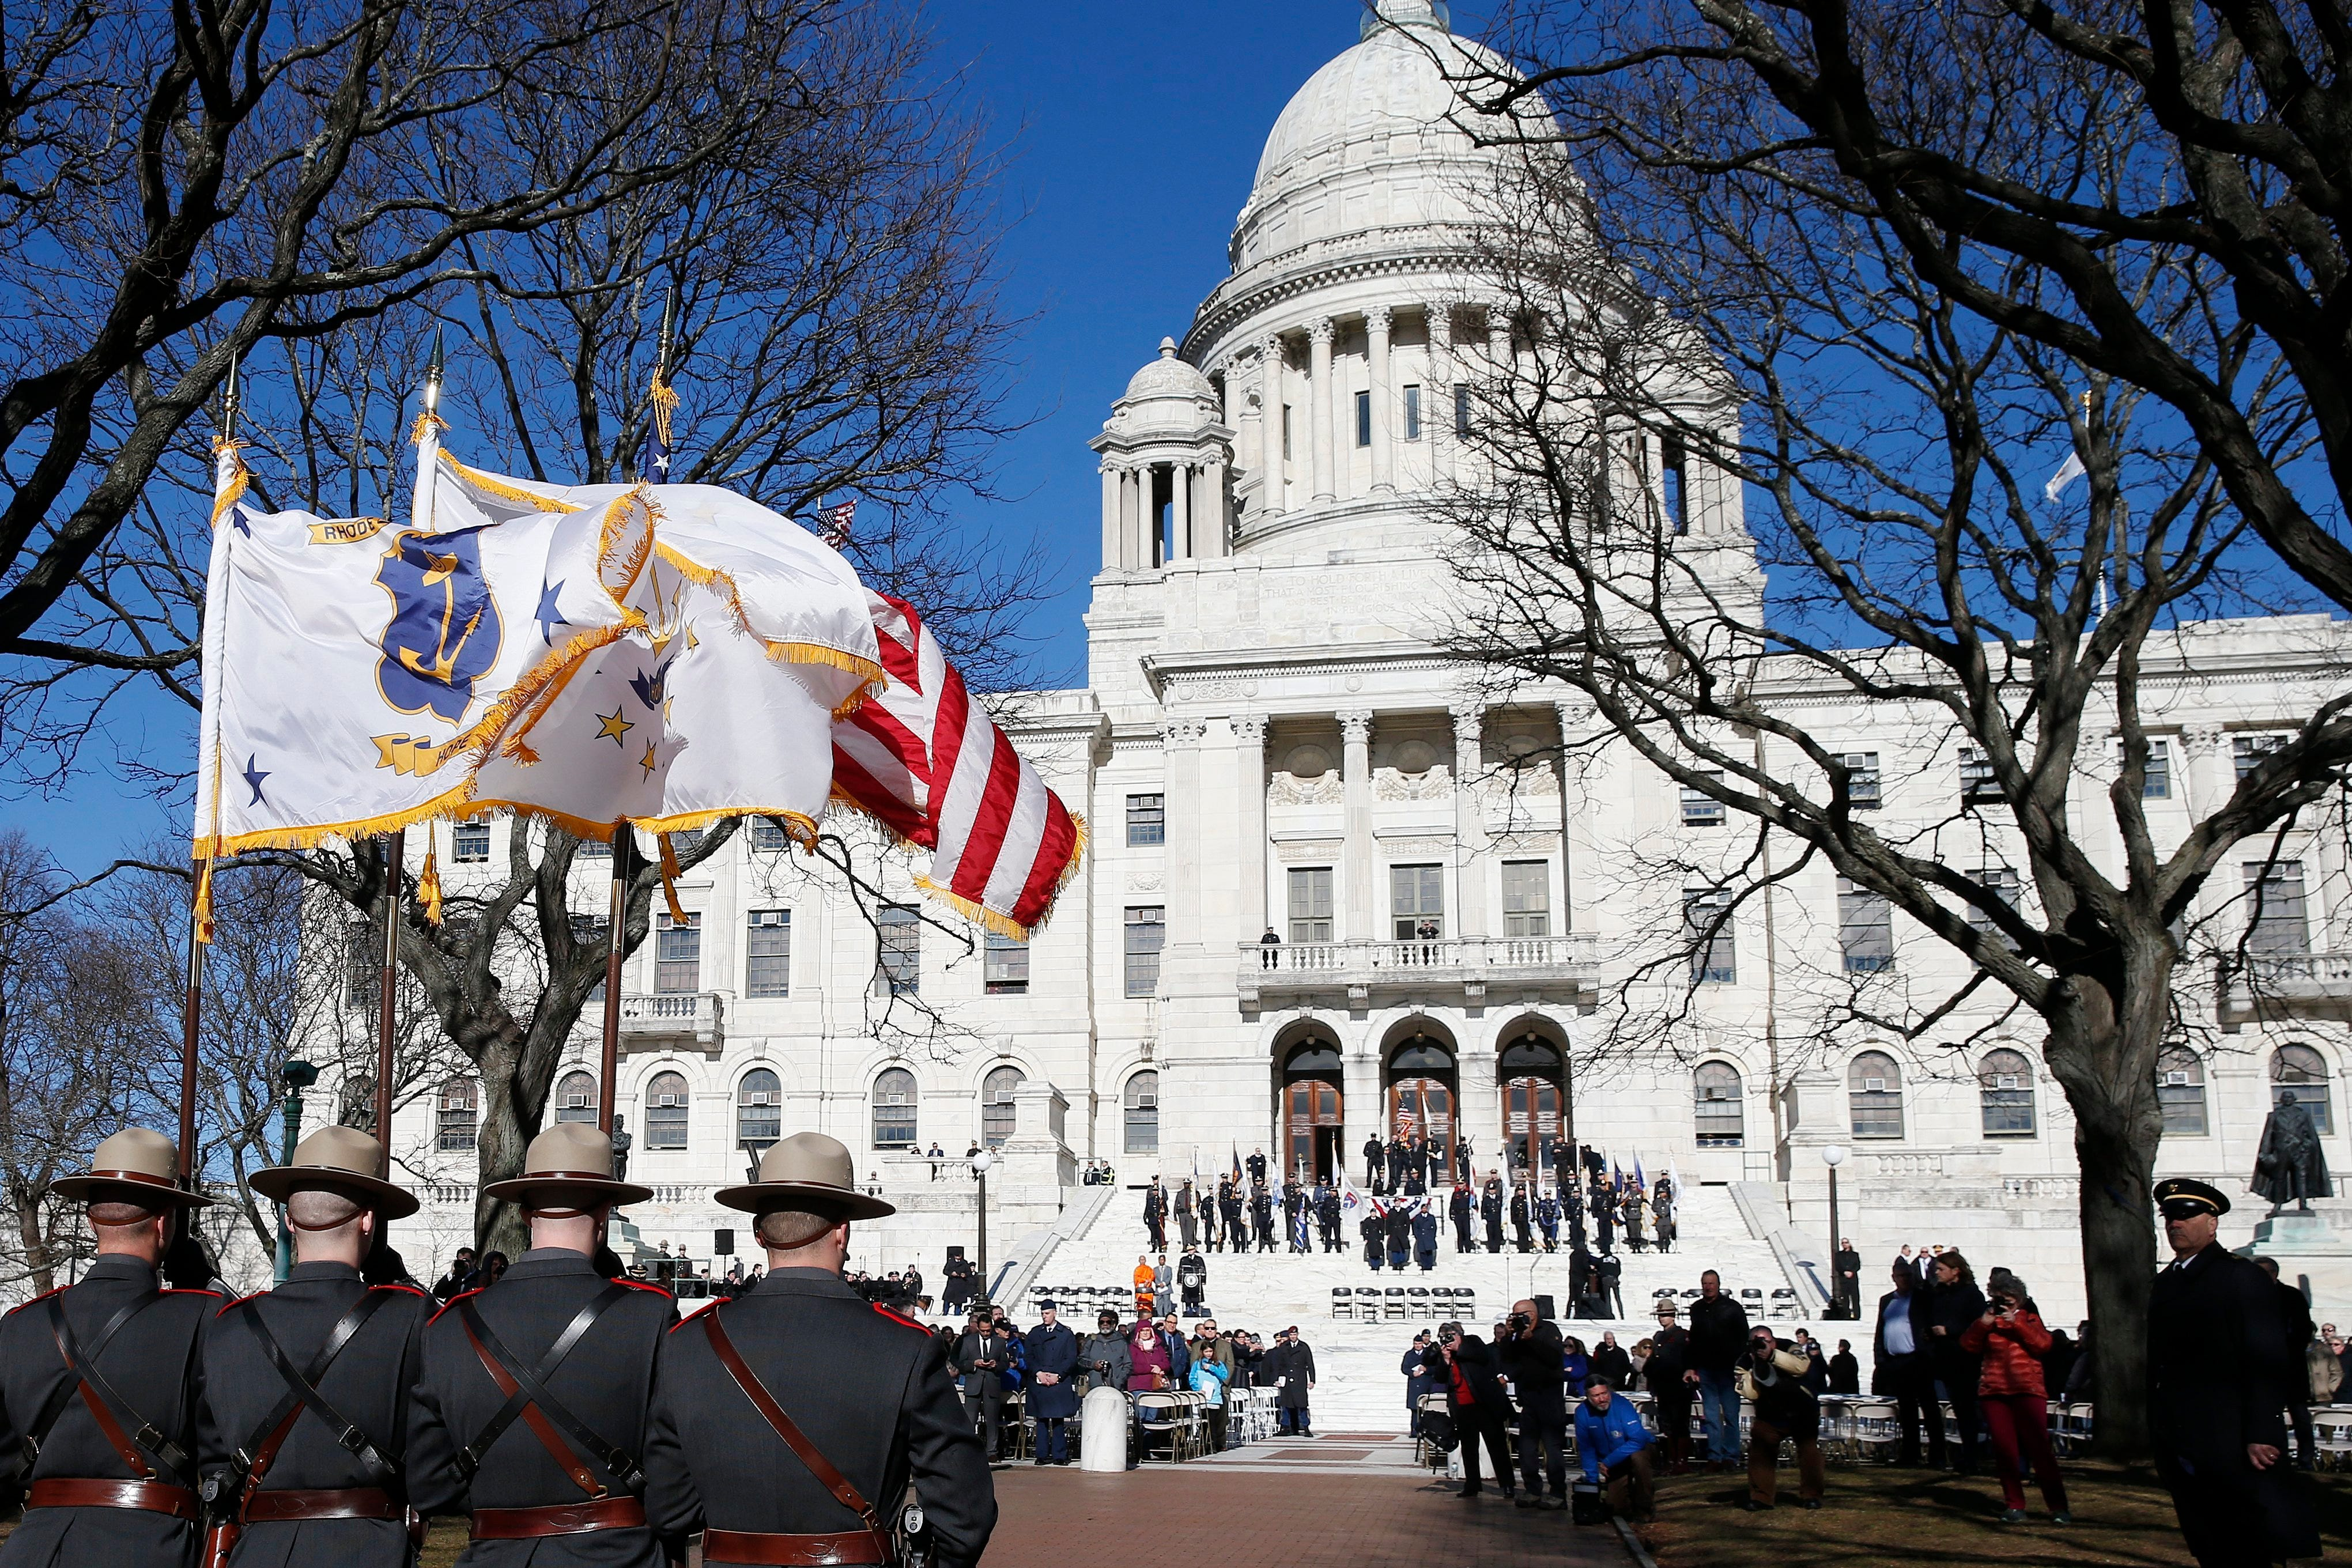 Members of the Rhode Island State Police lead the inauguration procession at the State House in Providence, R.I., on Tuesday, Jan. 1, 2019.